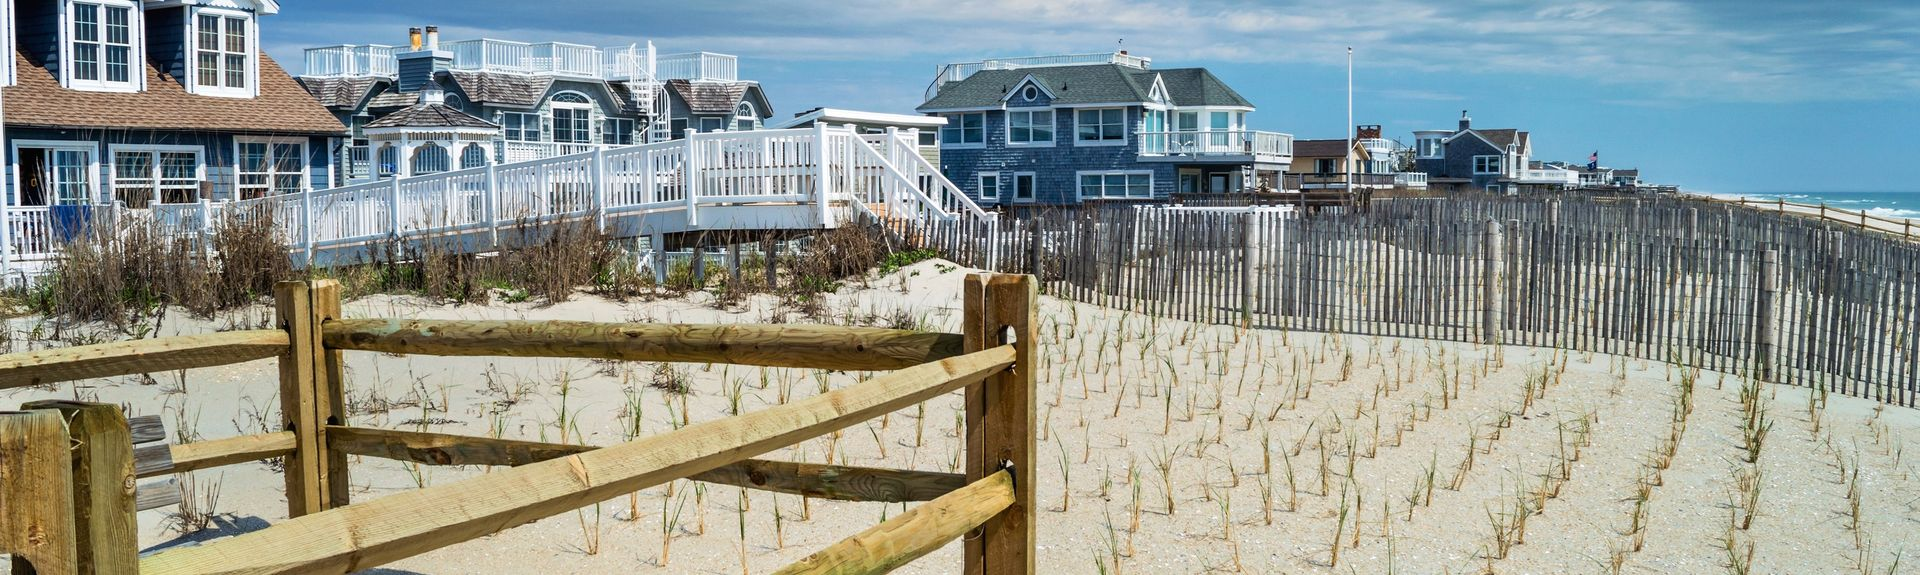 Surf City, New Jersey, Estados Unidos